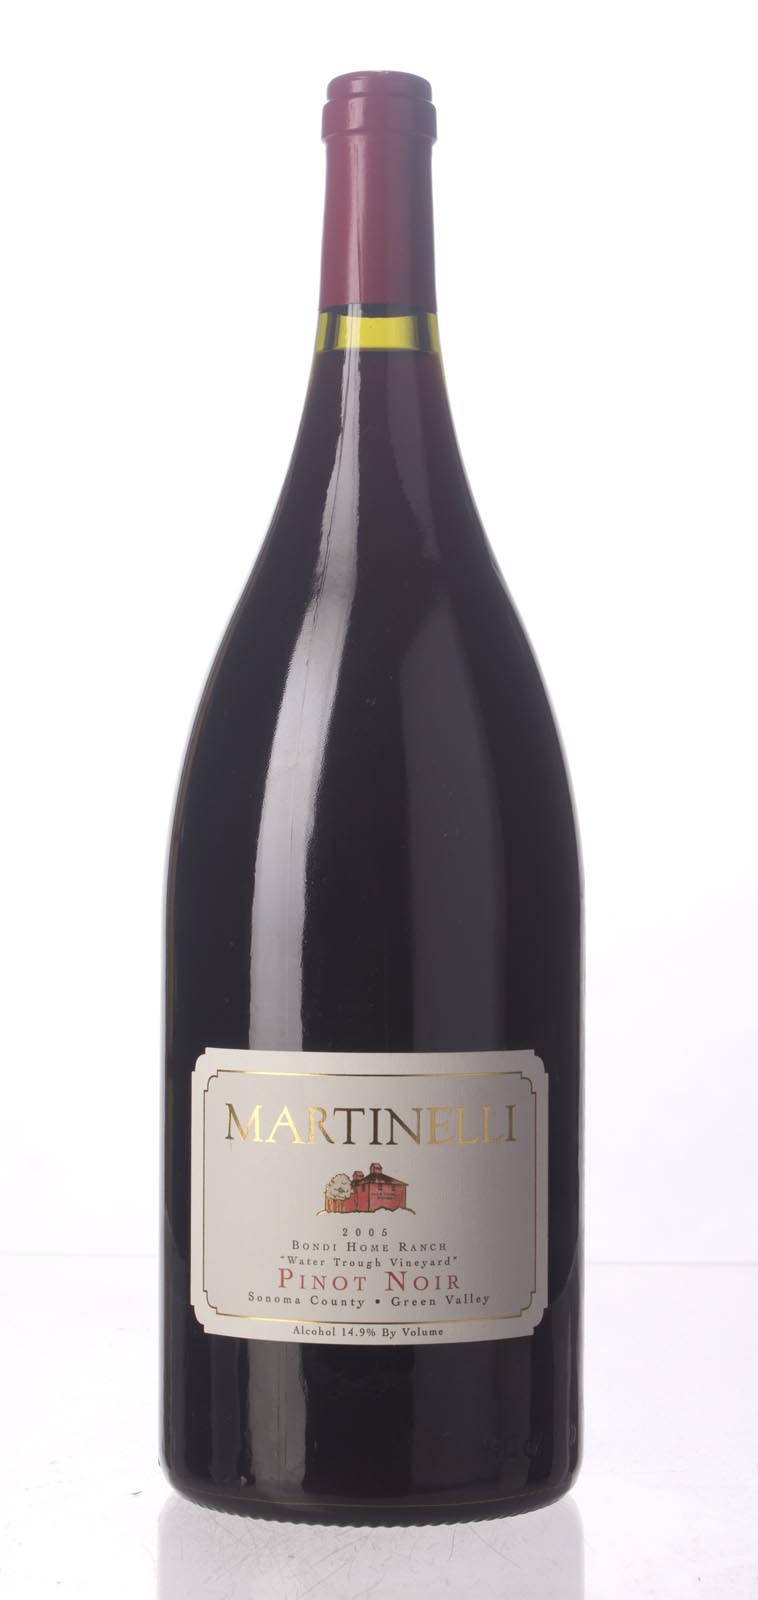 Martinelli Pinot Noir Bondi Home Ranch Water Trough Vineyard 2005, 1.5L (ST93, WS92) from The BPW - Merchants of rare and fine wines.